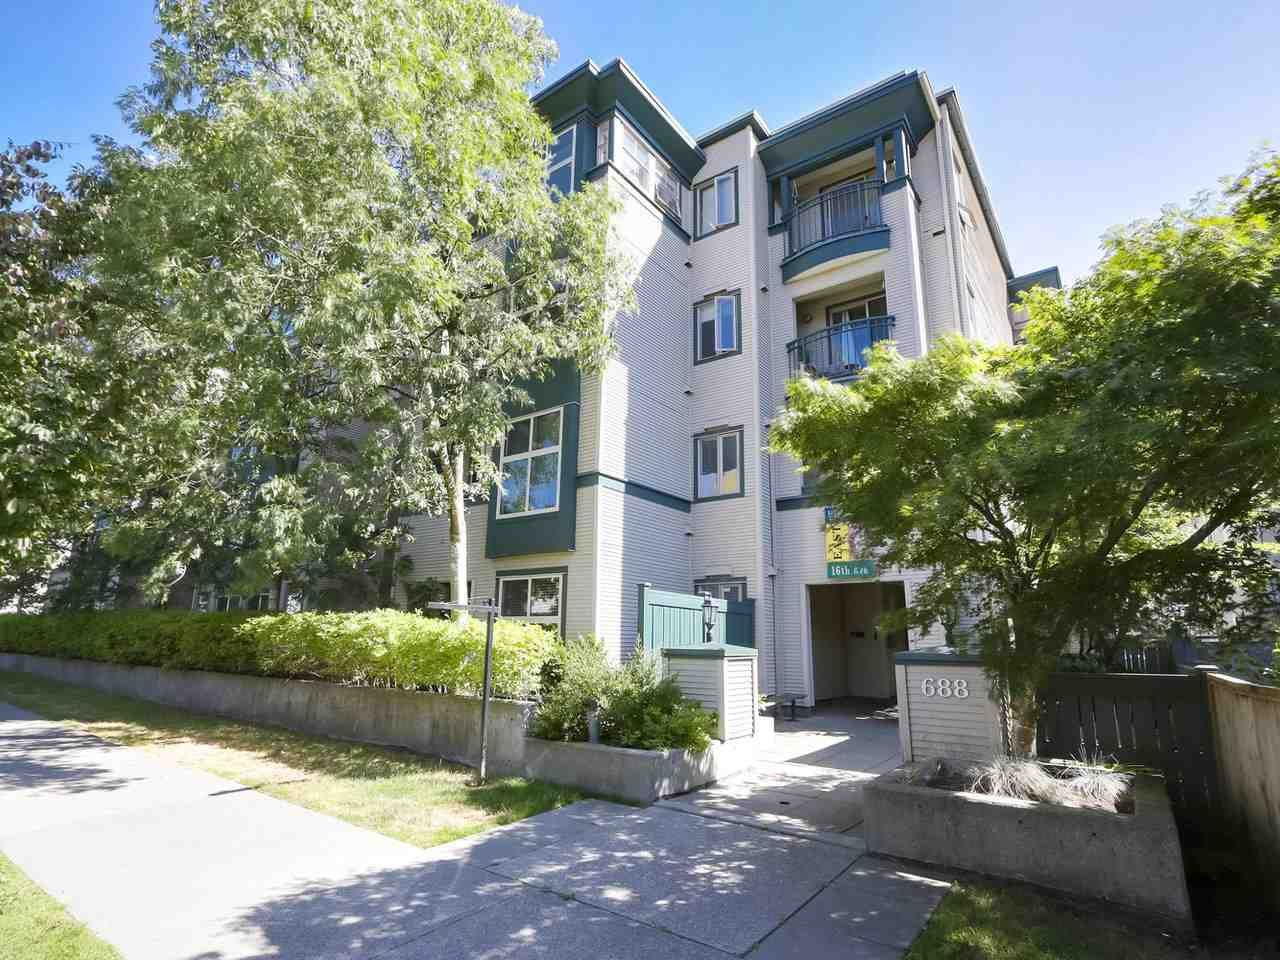 """Main Photo: 312 688 E 16TH Avenue in Vancouver: Fraser VE Condo for sale in """"Vintage Eastside"""" (Vancouver East)  : MLS®# R2510286"""